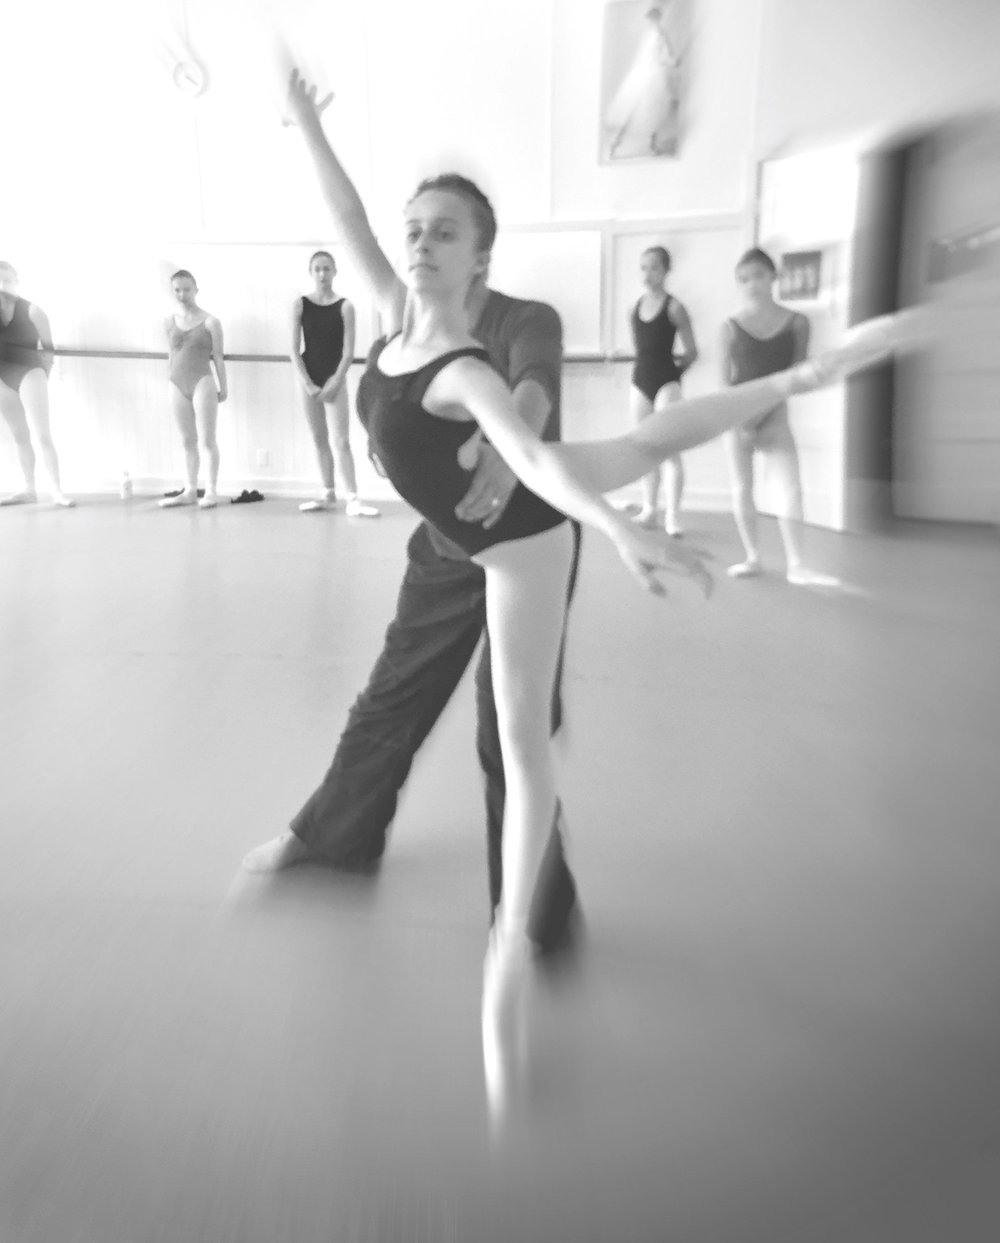 JUNE 2019 SESSIONS - Advanced level daily technique, pointe or batterie, plus partnering and variations. Also offering Intermediate level technique, pointe or batterie